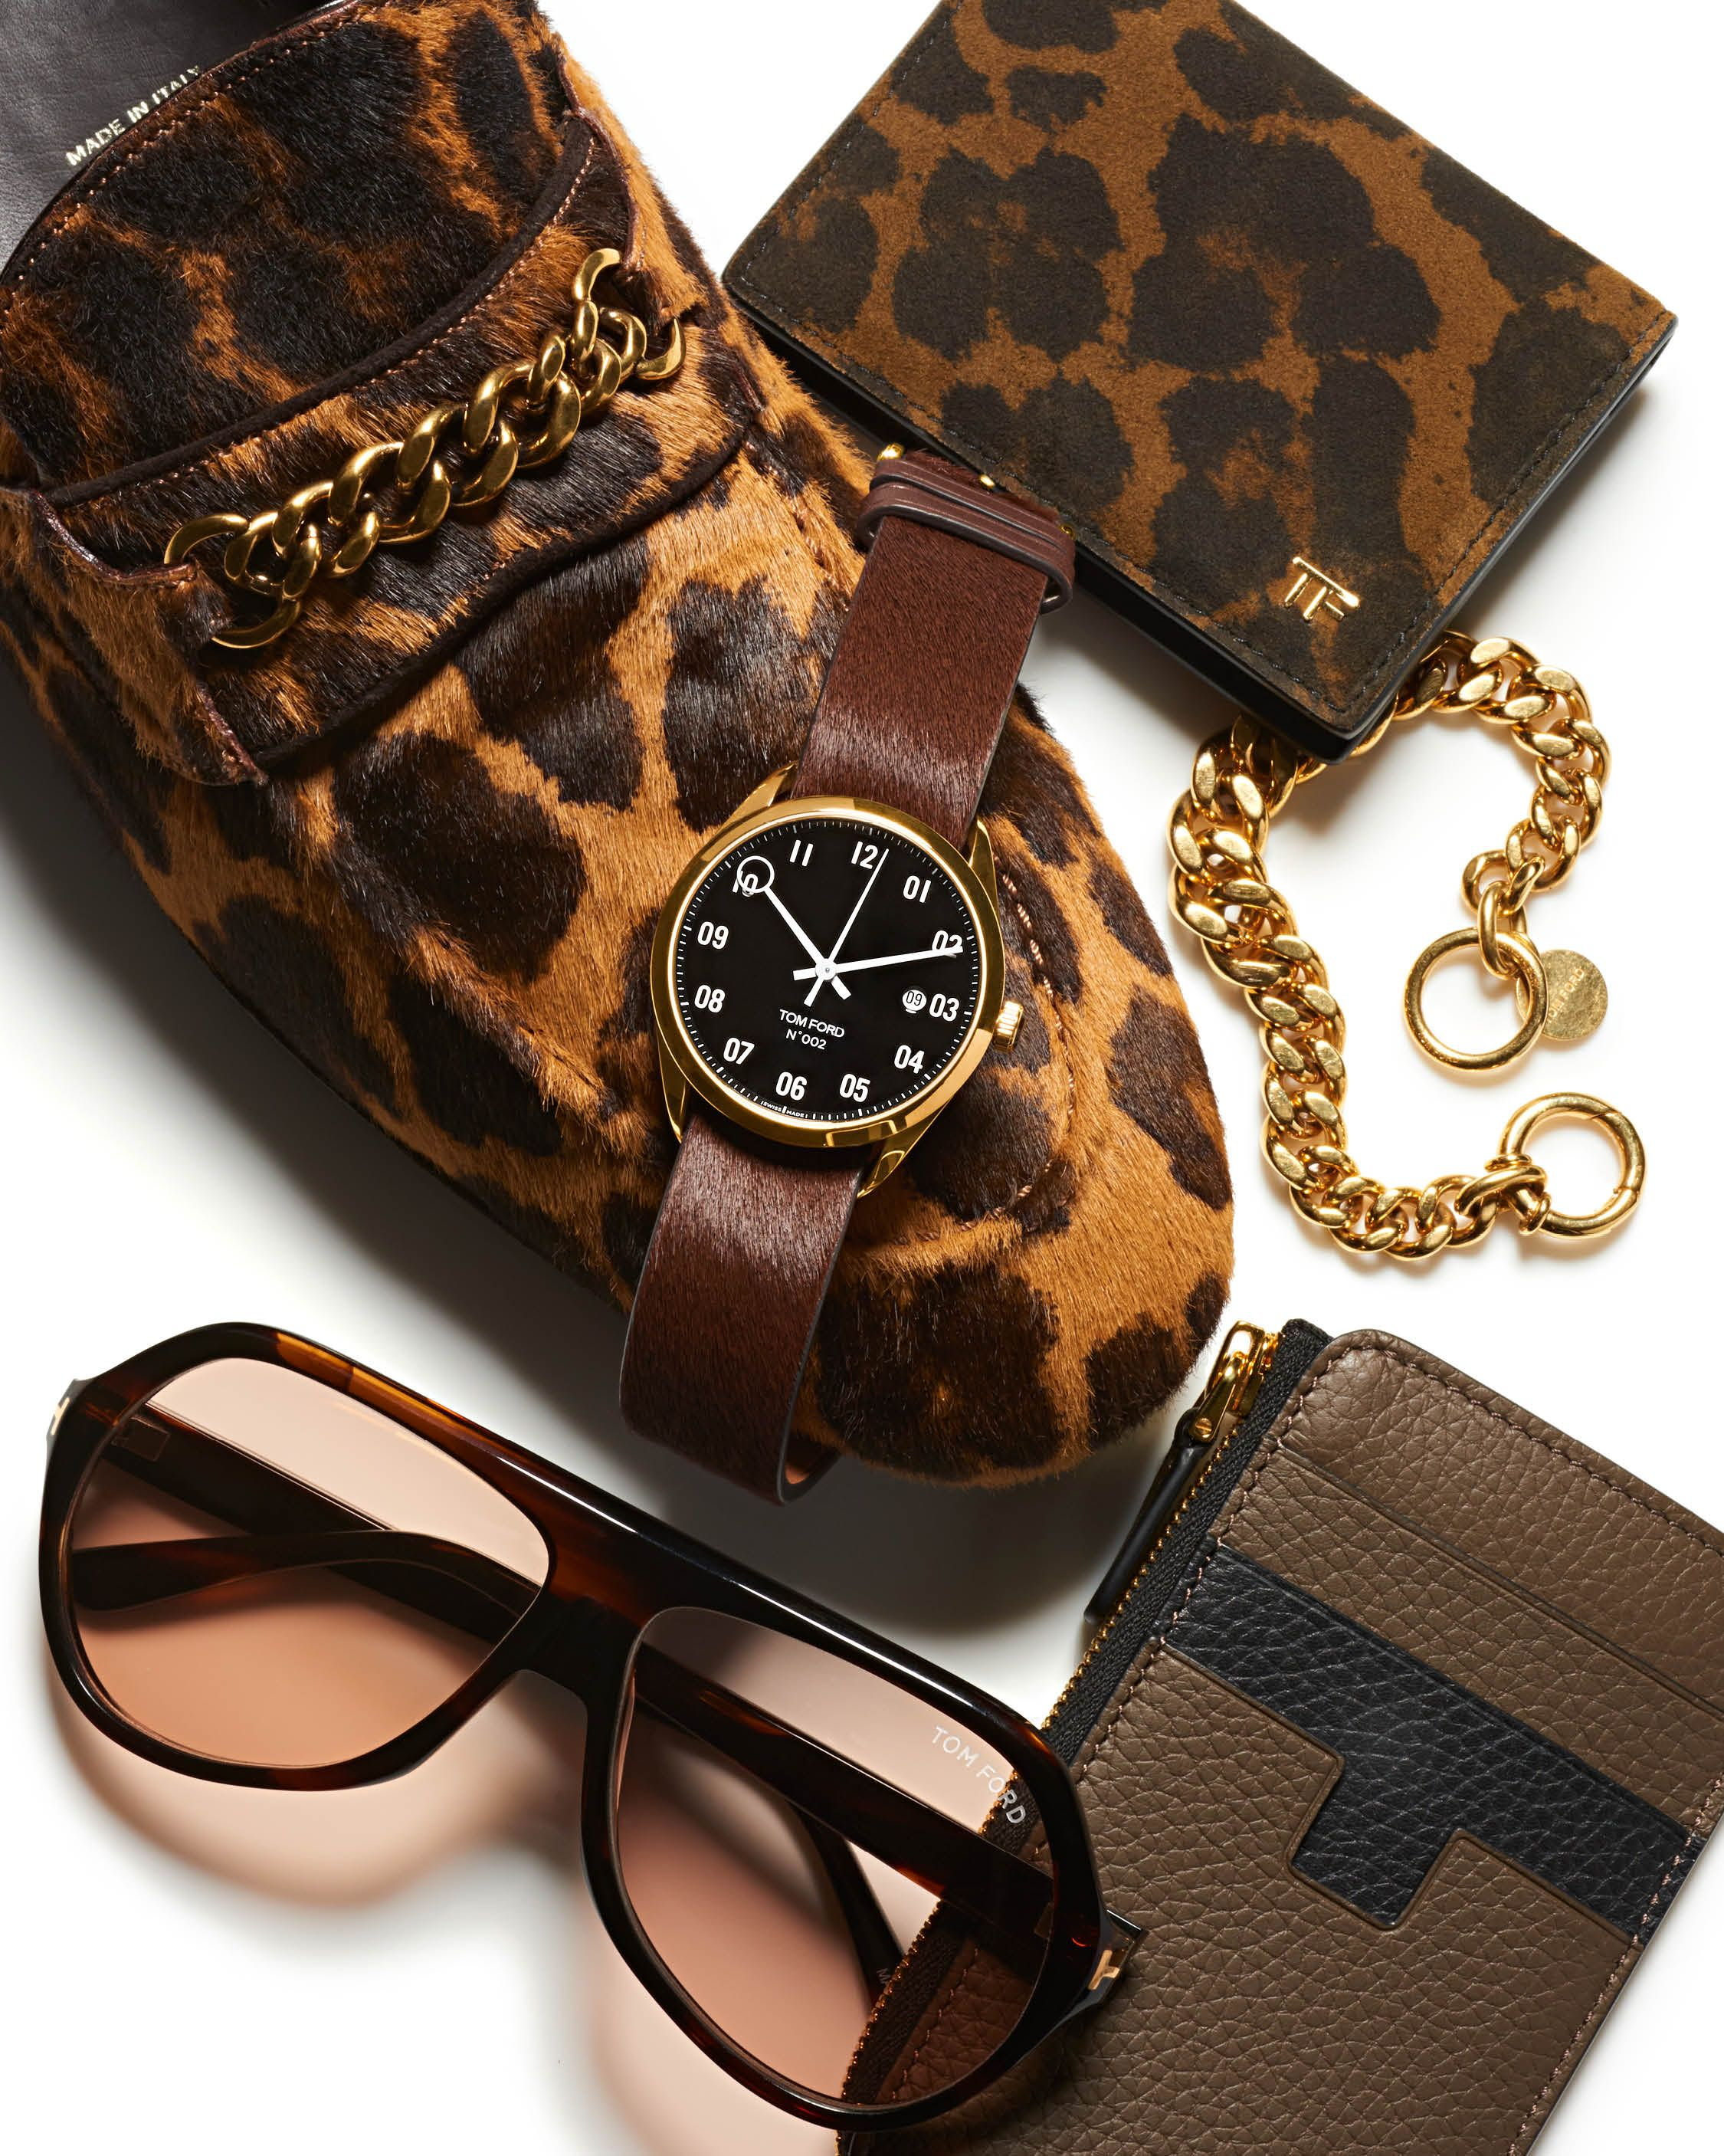 5e4df4b2be The new TOM FORD 002 Timepiece pairs well with TOM FORD accessories. # TOMFORD #